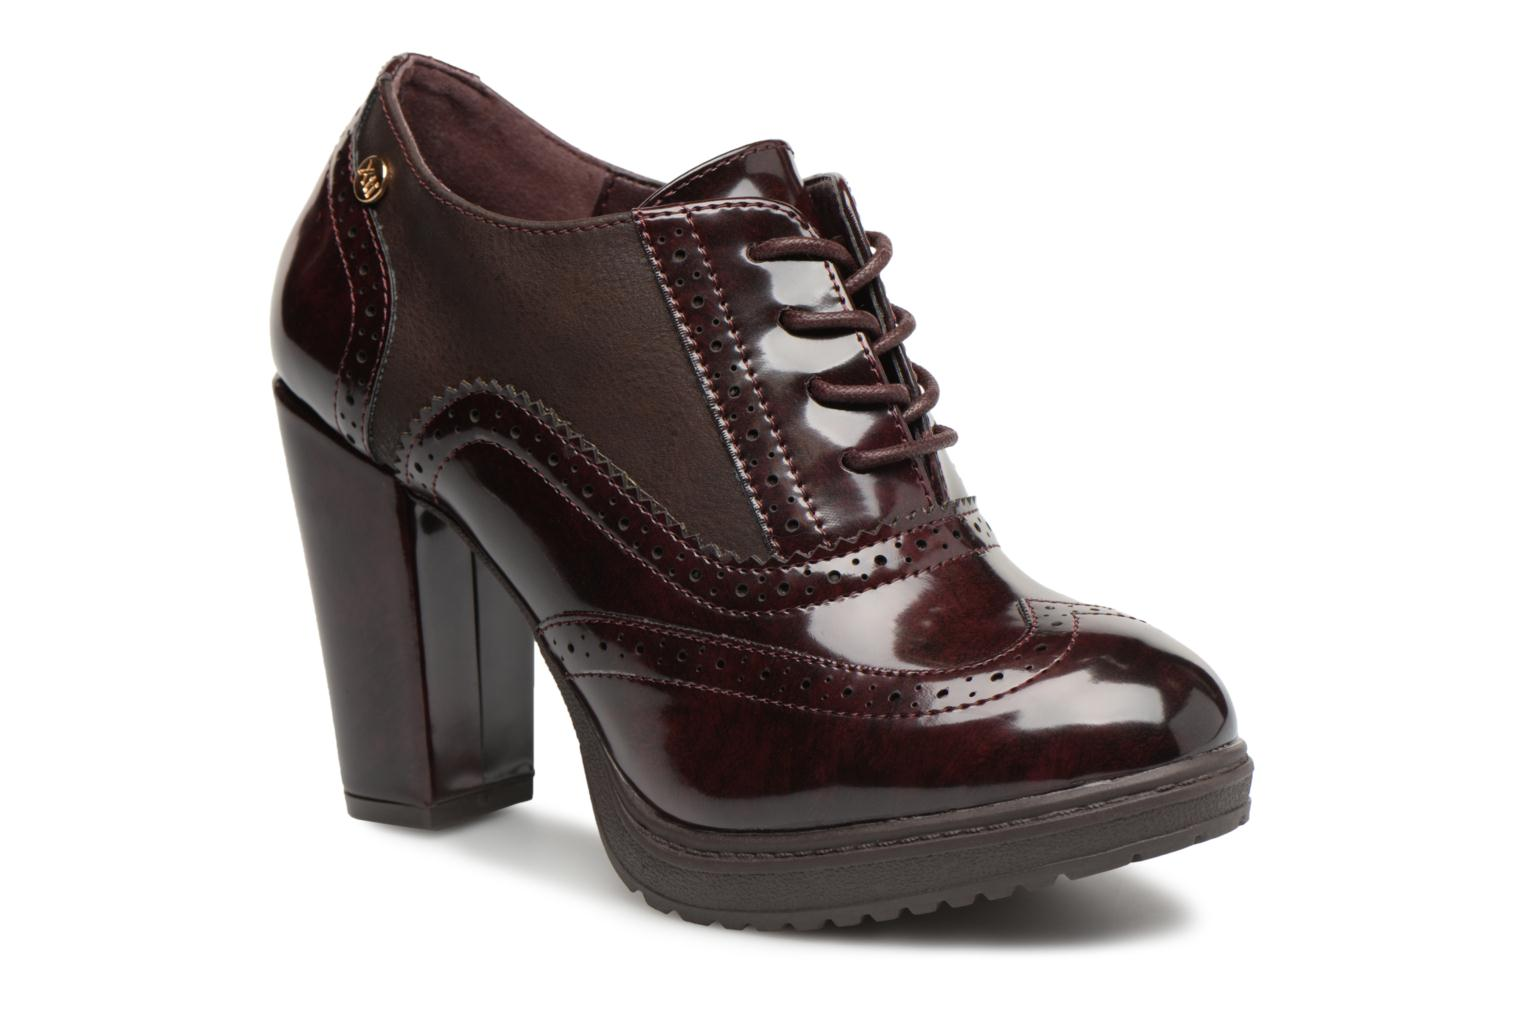 Xti - BORDEAUX Heeled YudFhQ